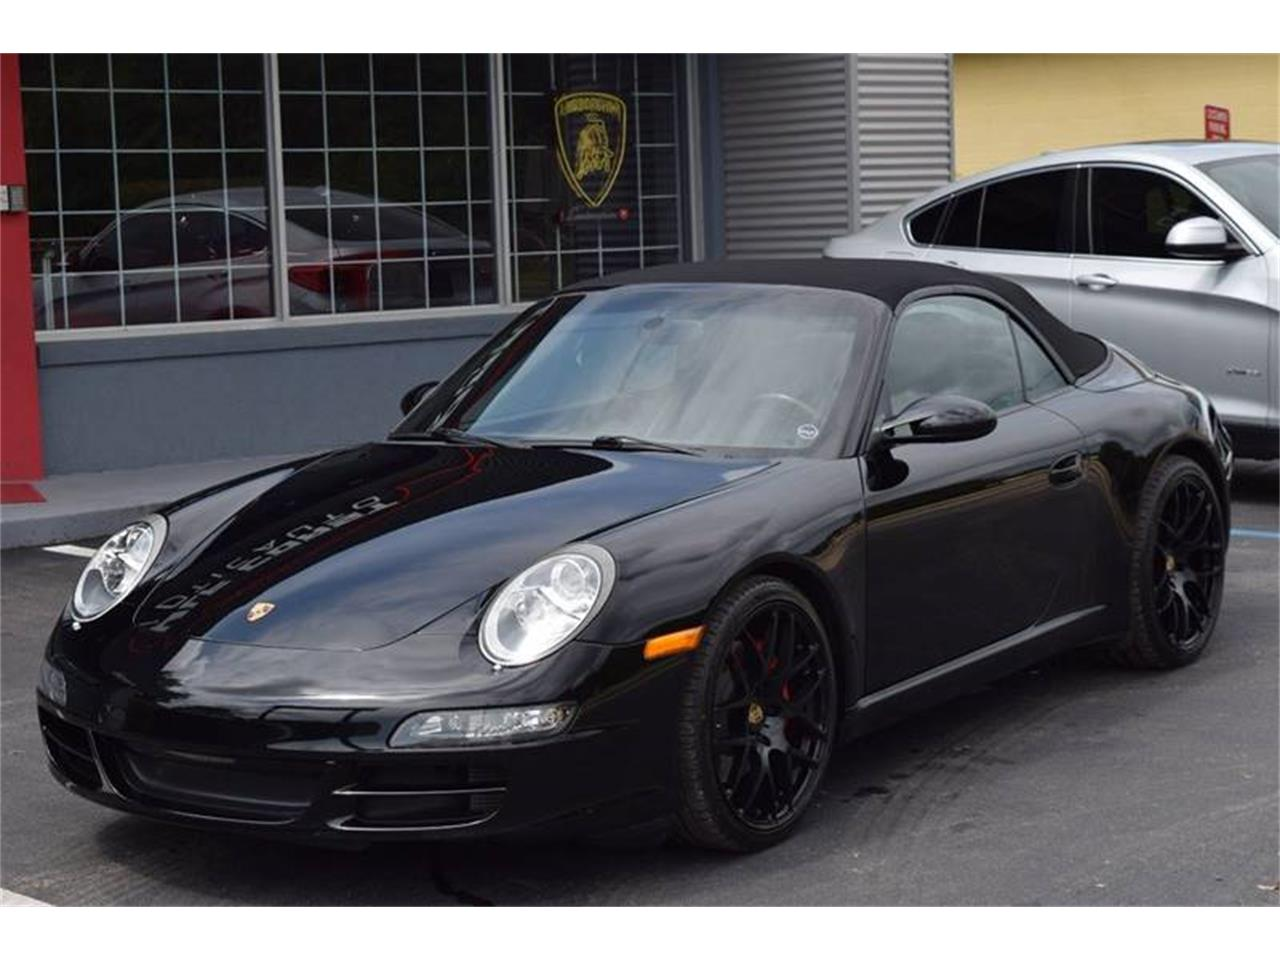 2006 Porsche 911 for sale in Biloxi, MS – photo 3